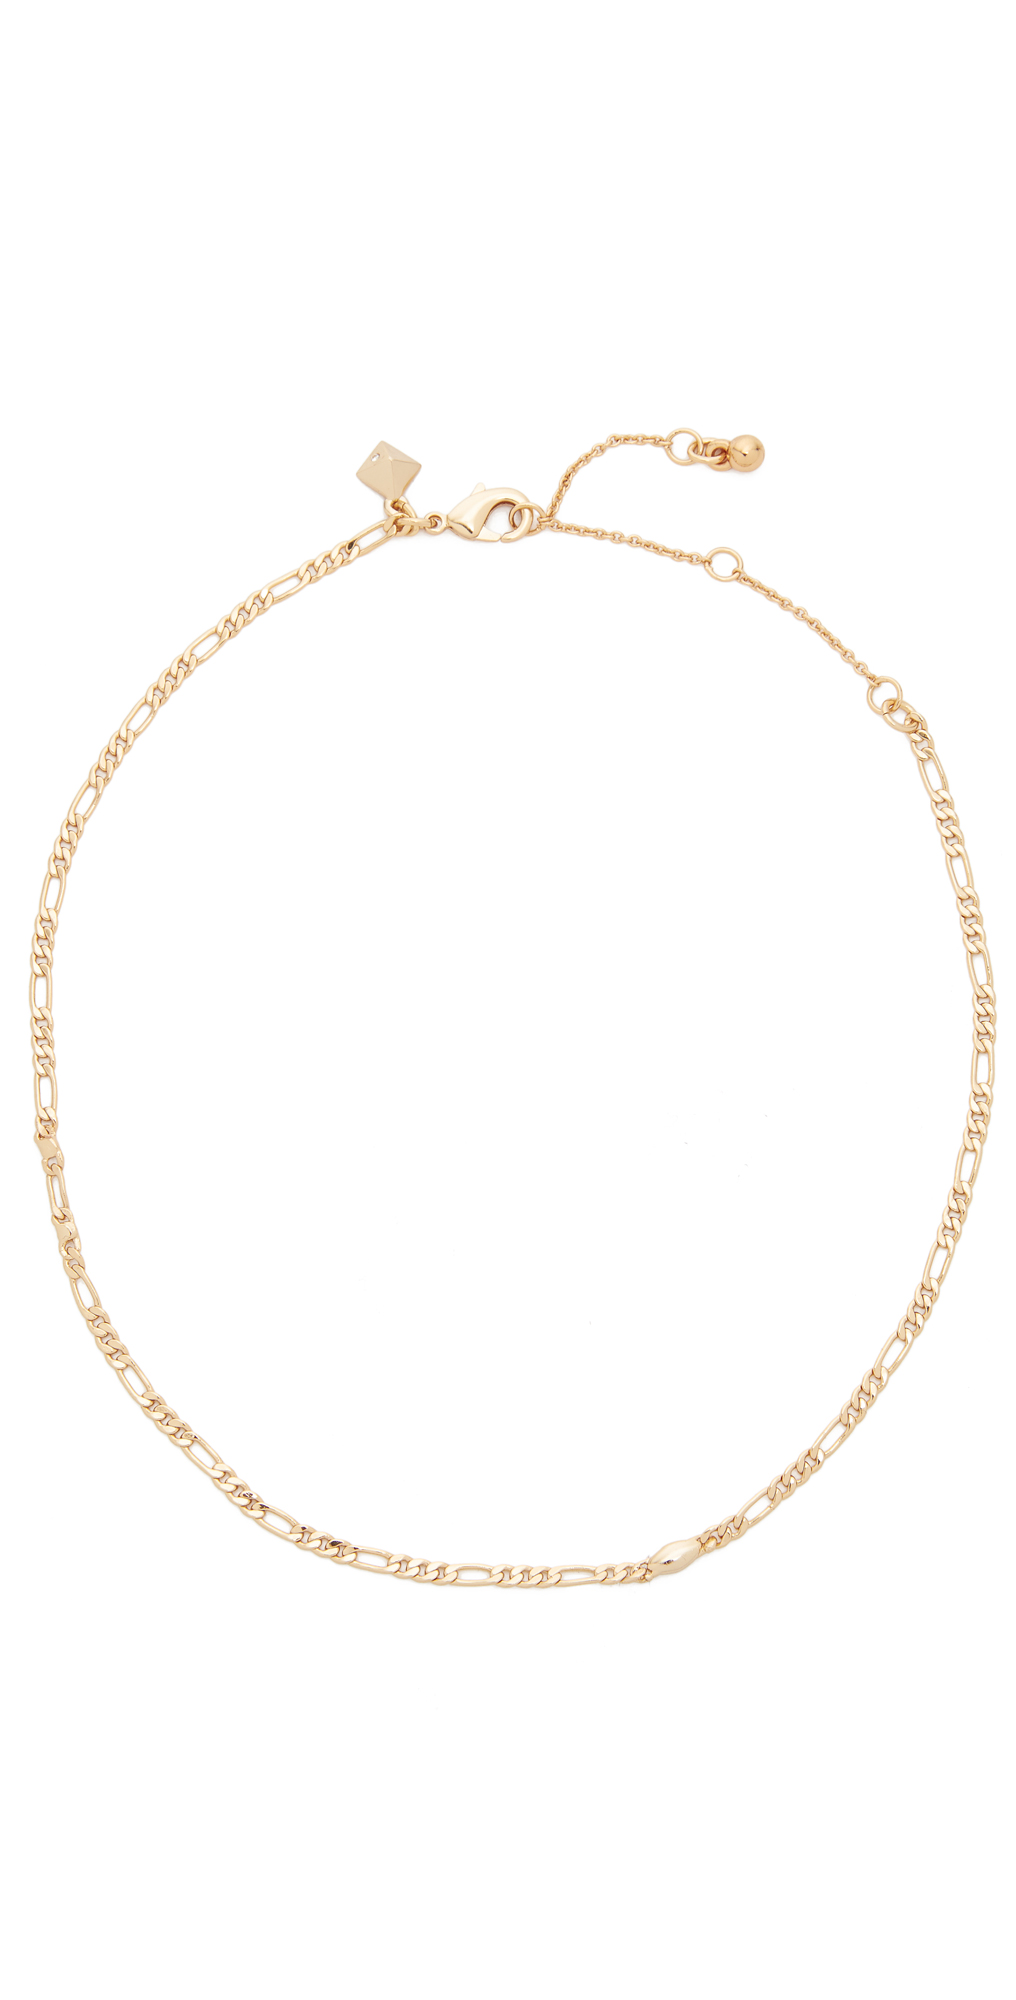 Boyfriend Chain Choker Necklace Rebecca Minkoff